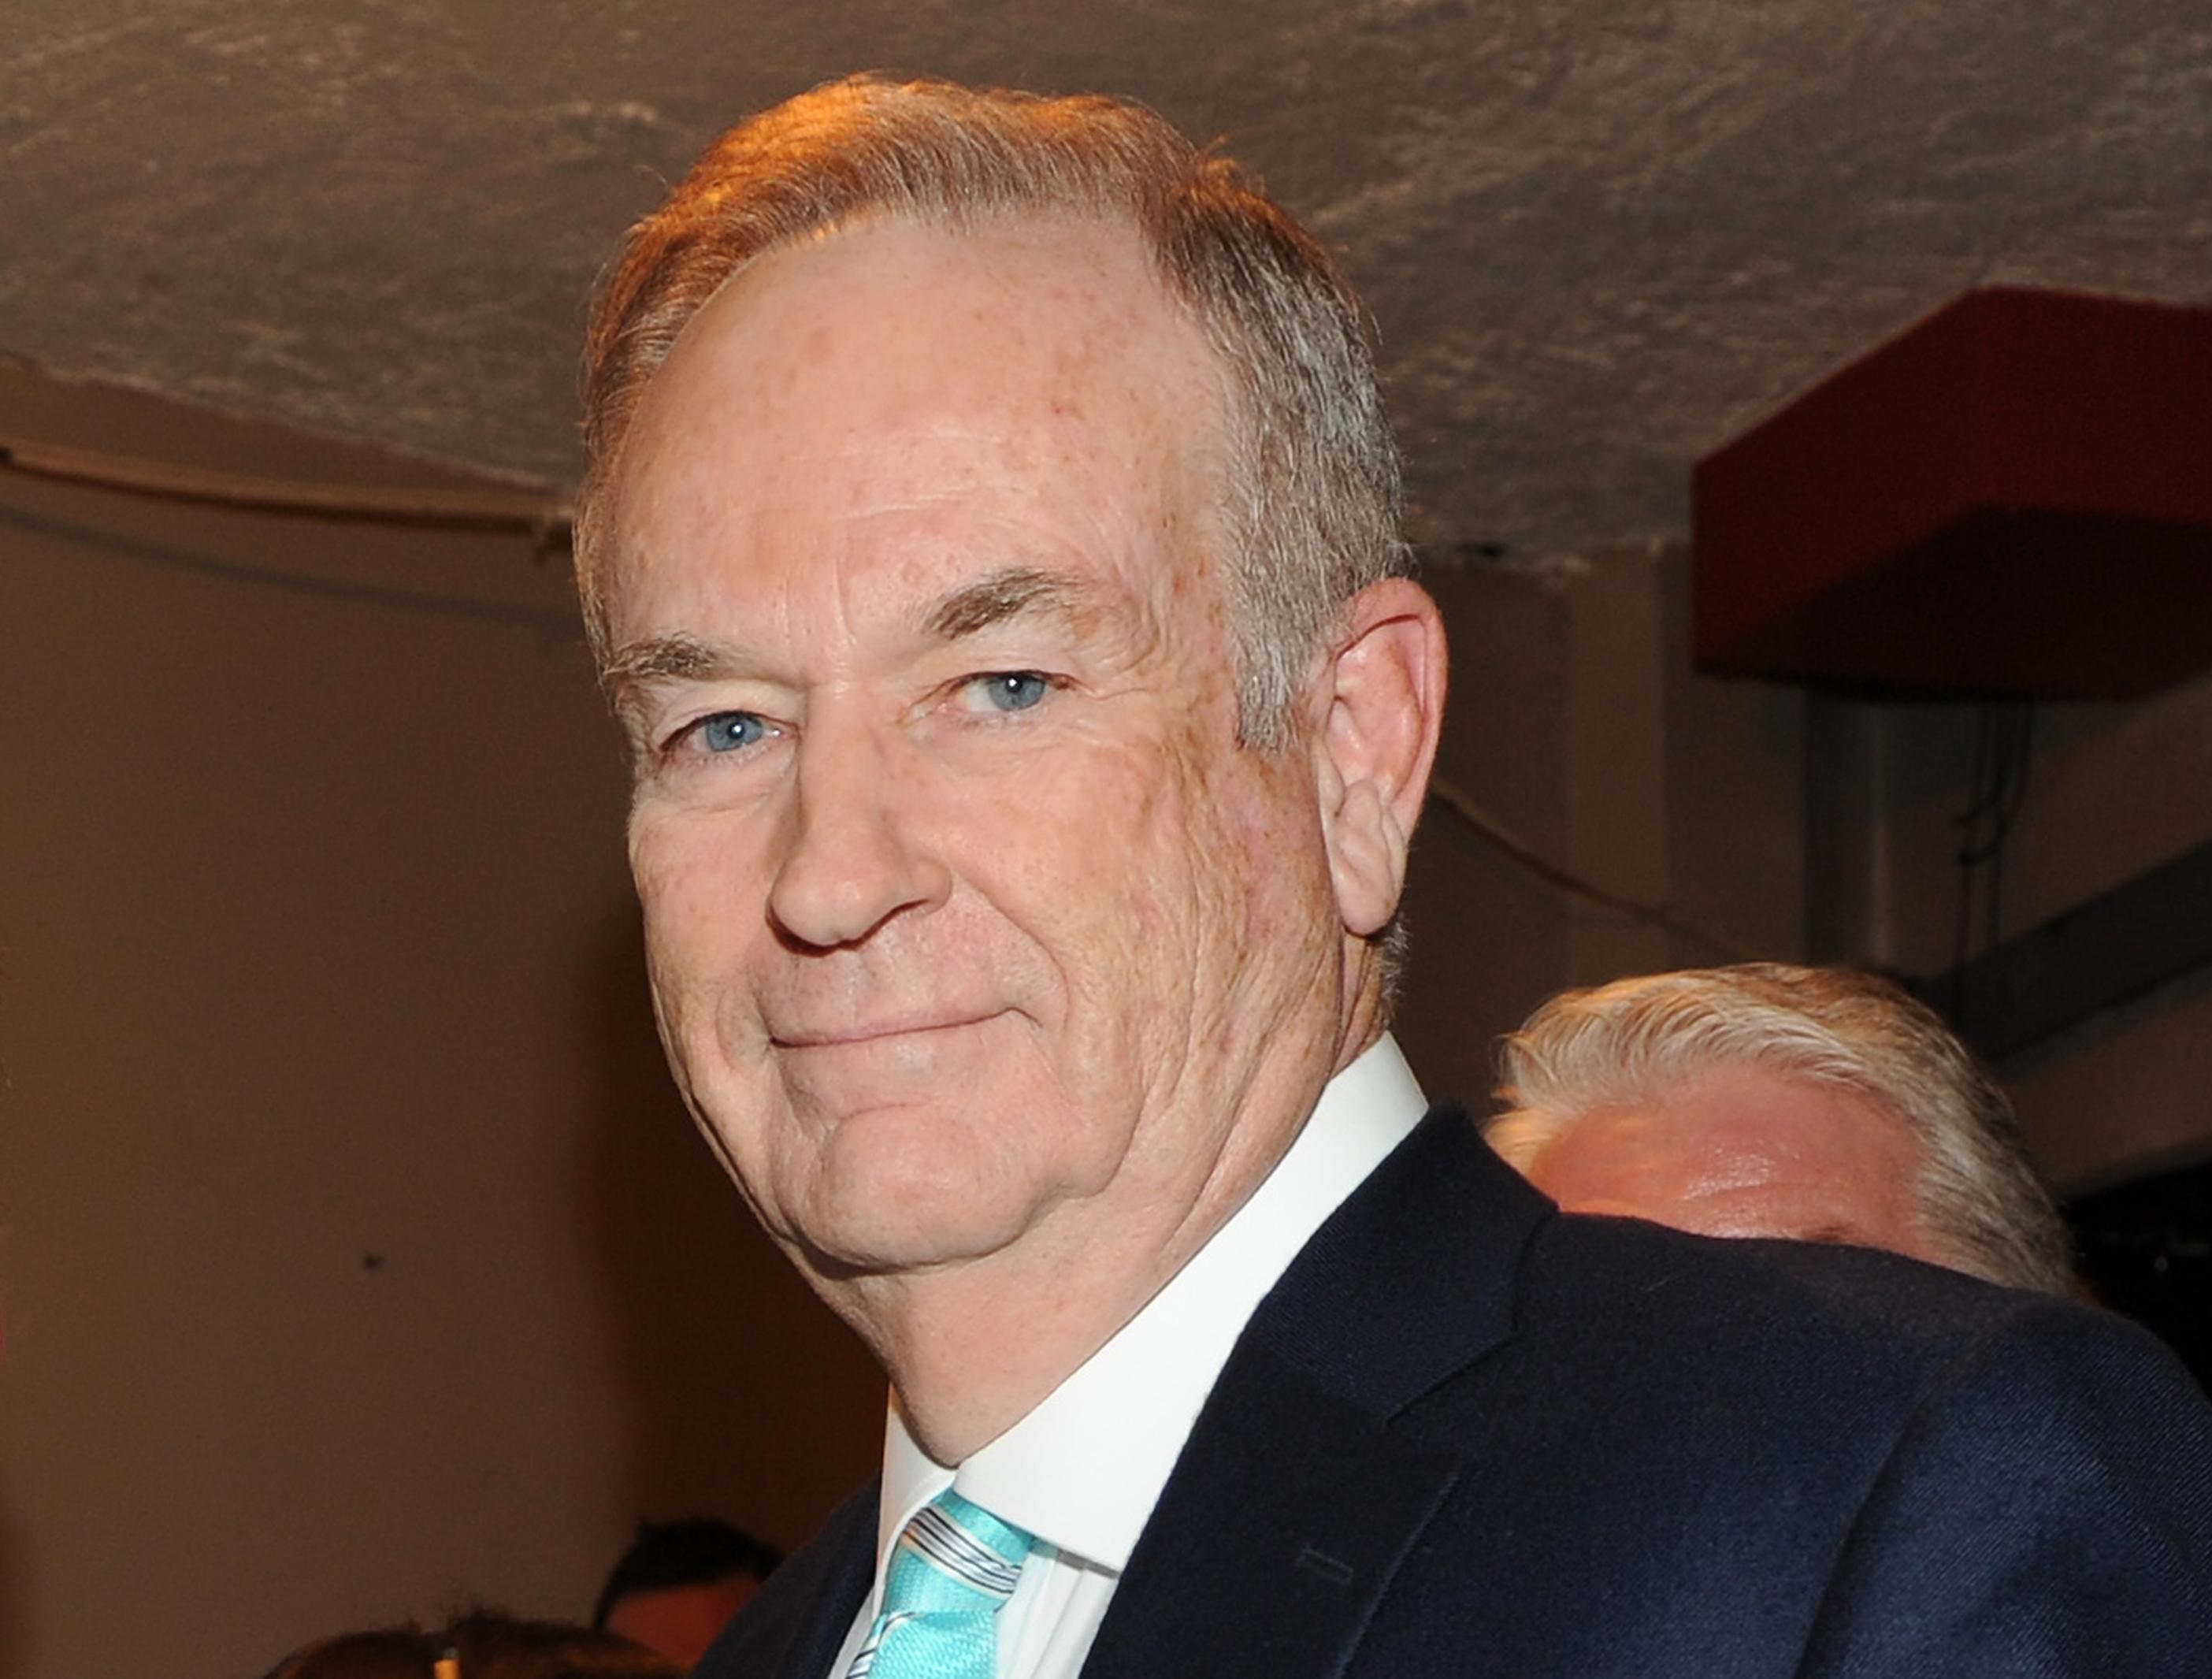 Bill O'Reilly declares victory in the 'War on Christmas'